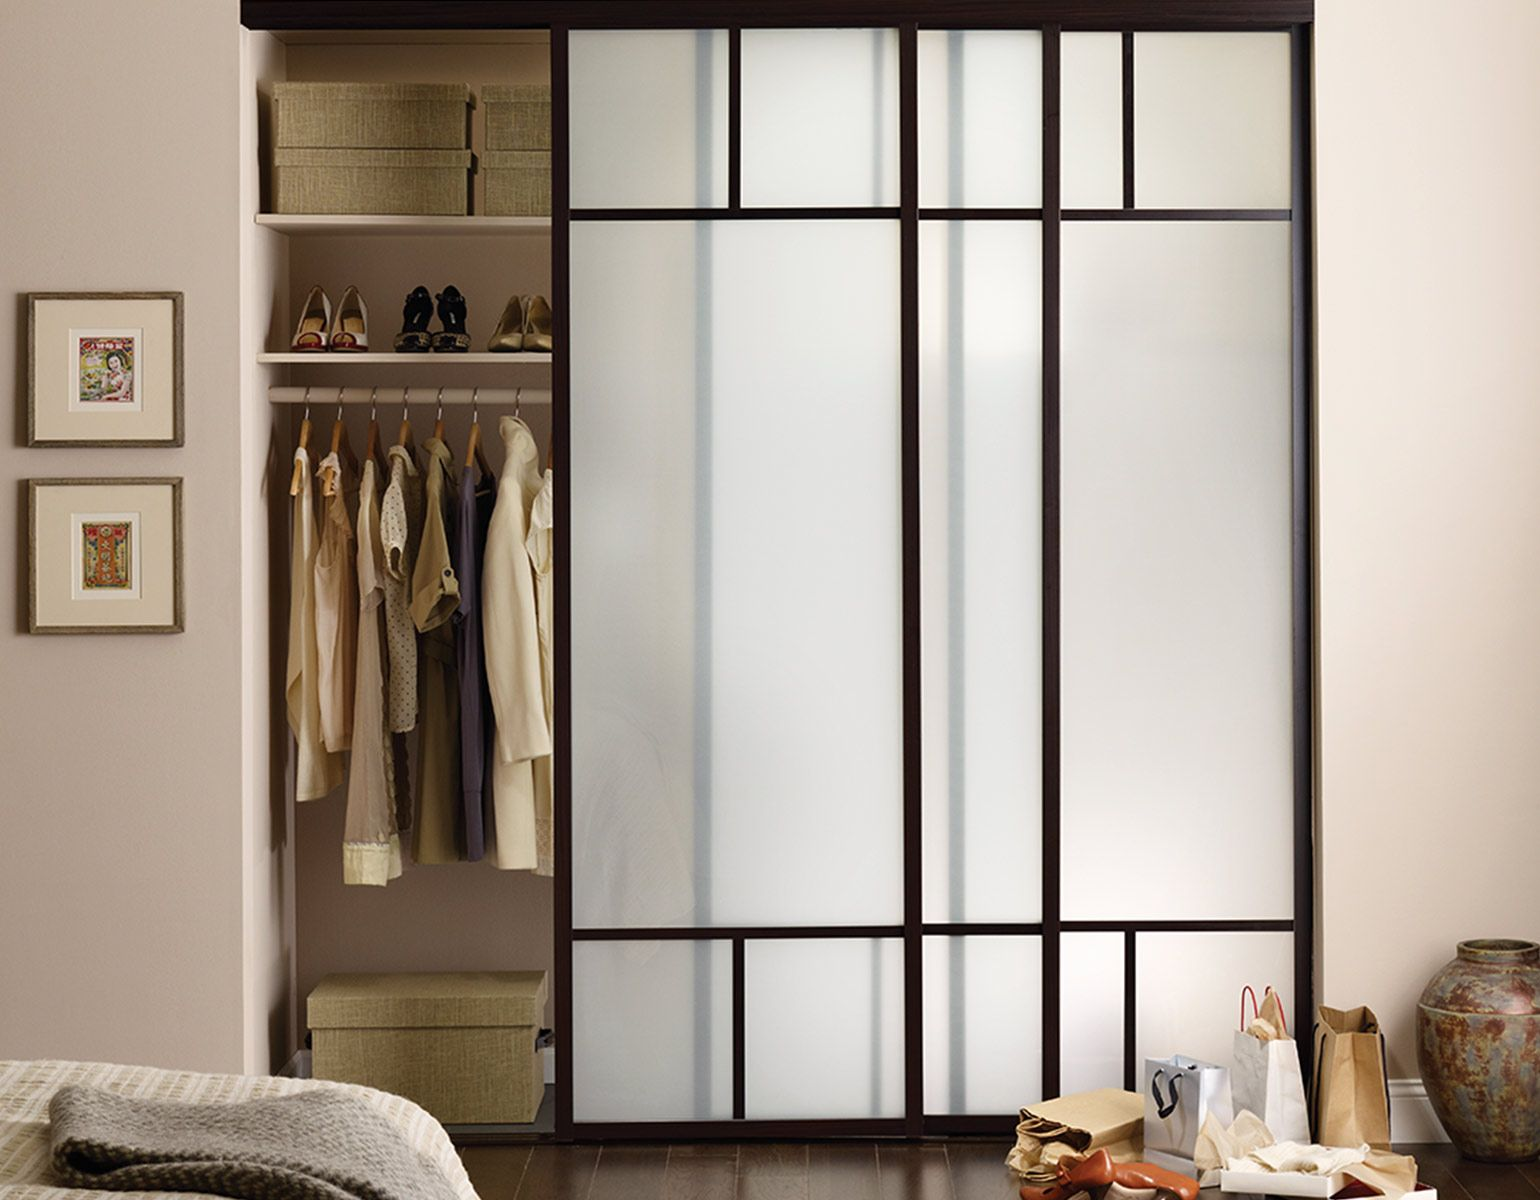 Sliding Gl Closet Doors With Frosted Duo T Frame Design And Charcoal